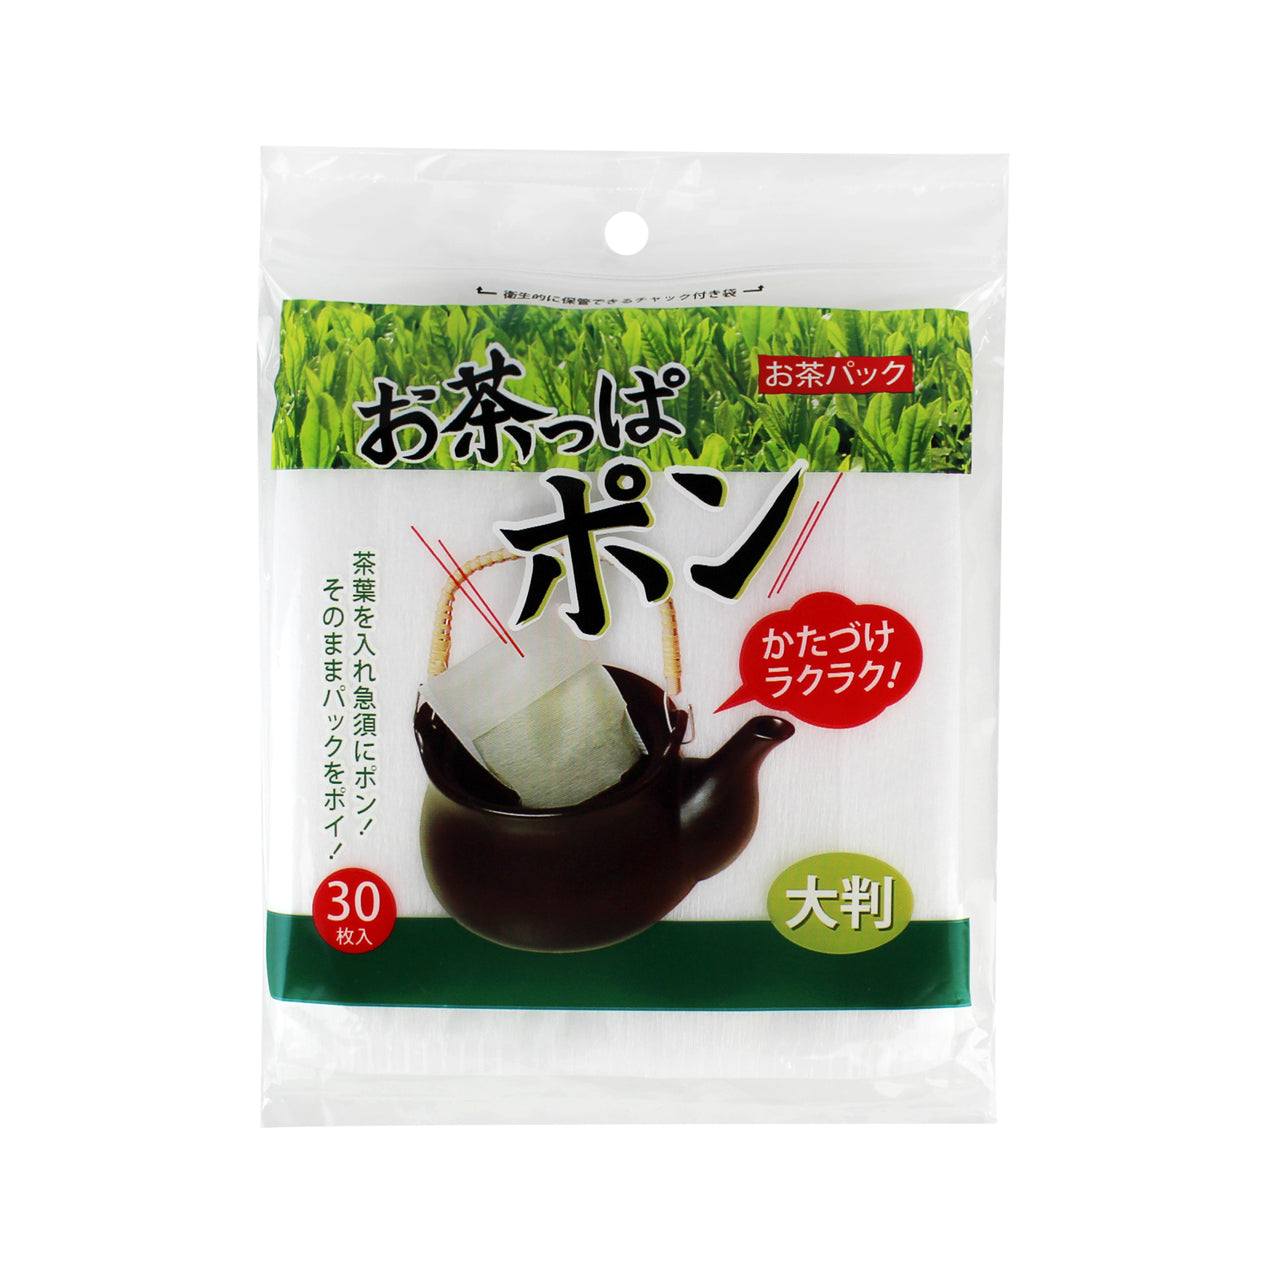 Disposable Tea Bags Large (30 Pieces) (SKU: 3835)